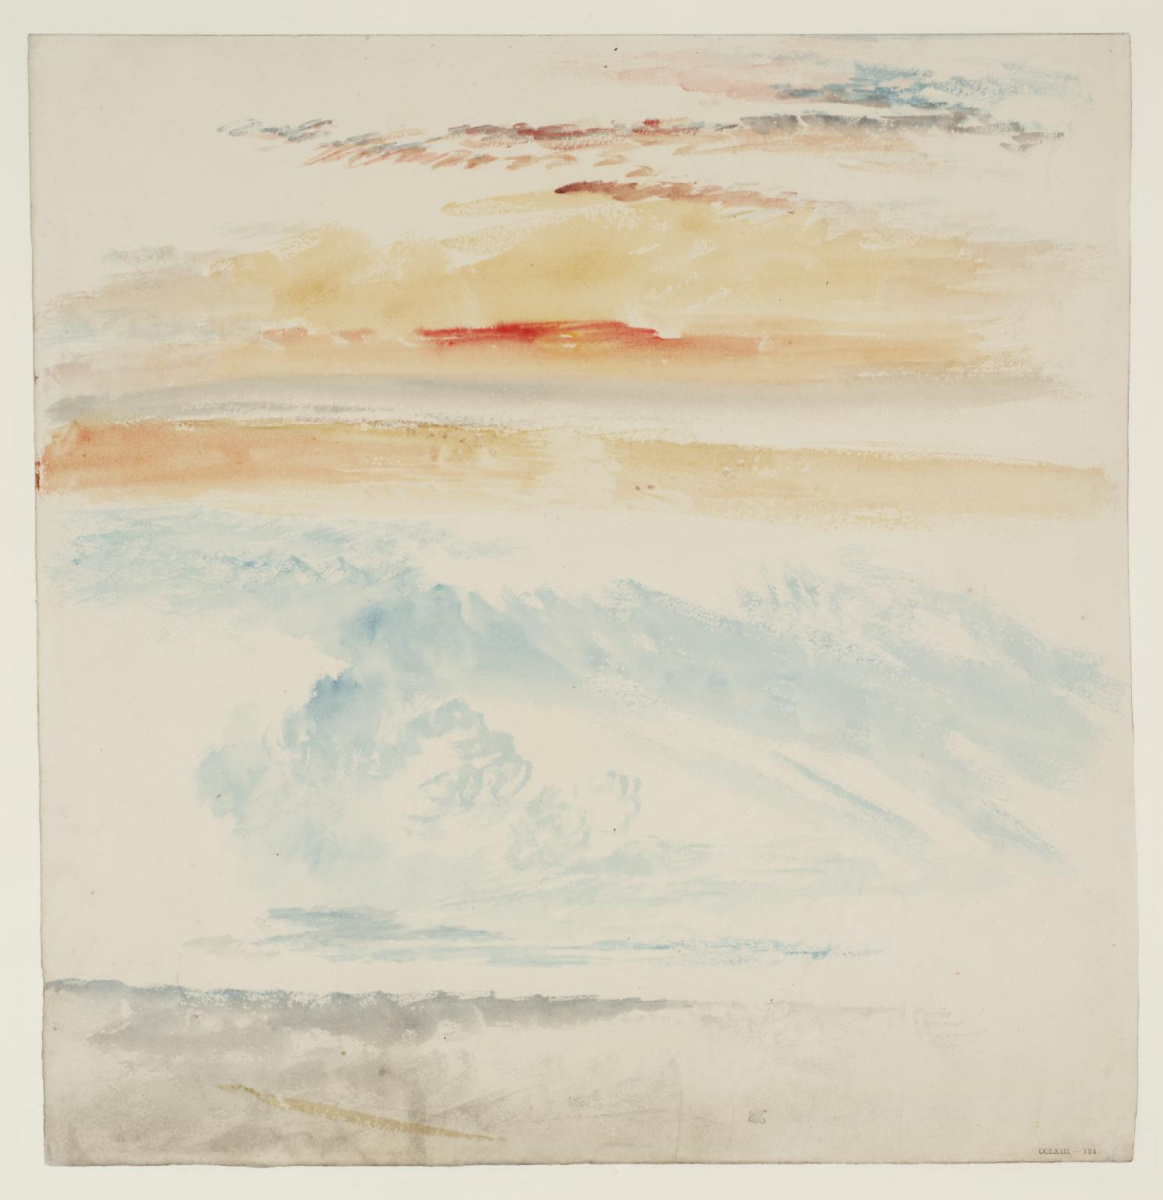 Joseph Mallord William Turner. Two sketches of the sky above the landscape or sea, by day and at sunset or at dawn